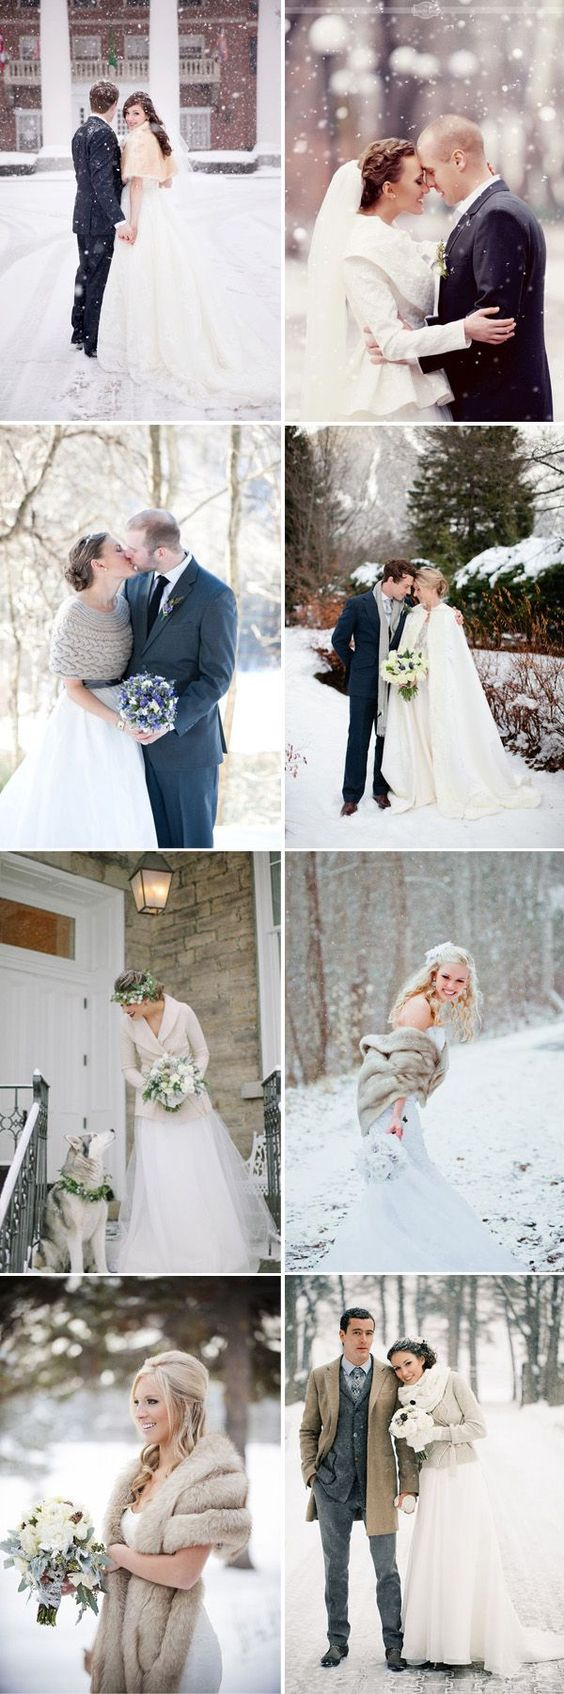 Charismatic-Winter-Wedding.jpg